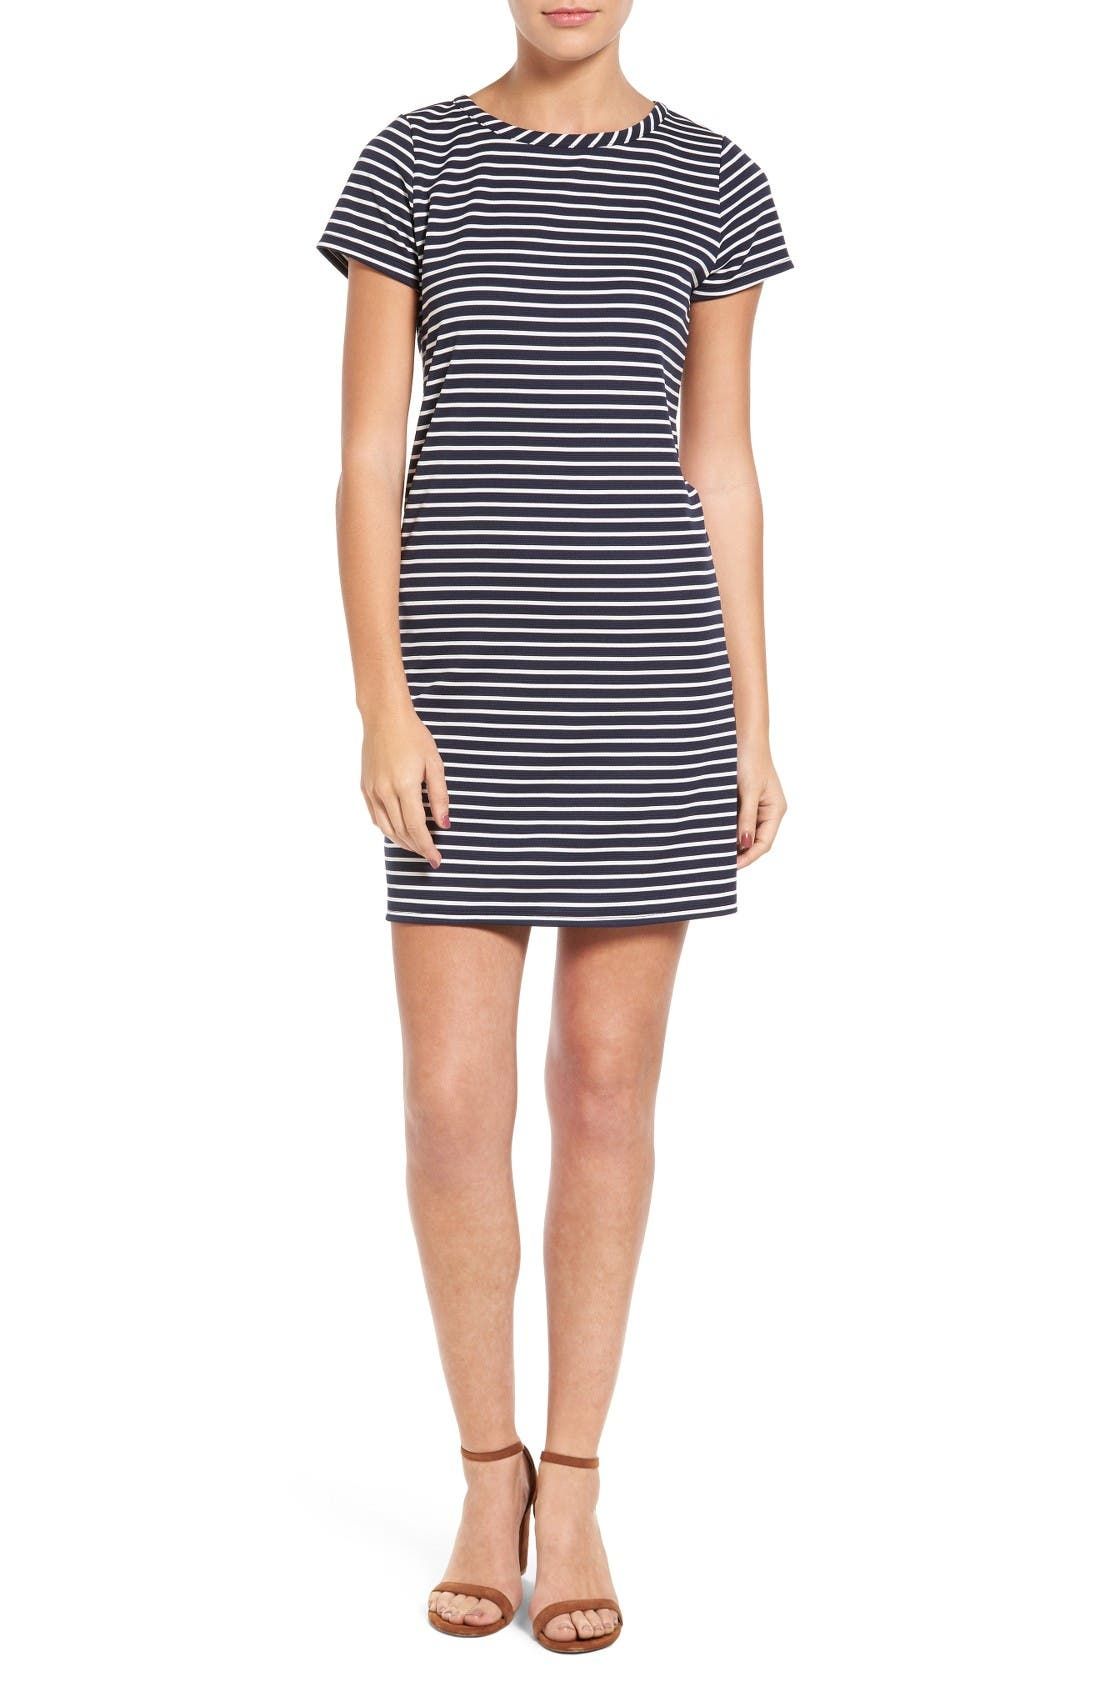 Main Image - Loveappella Stripe Ottoman Shift Dress (Petite)